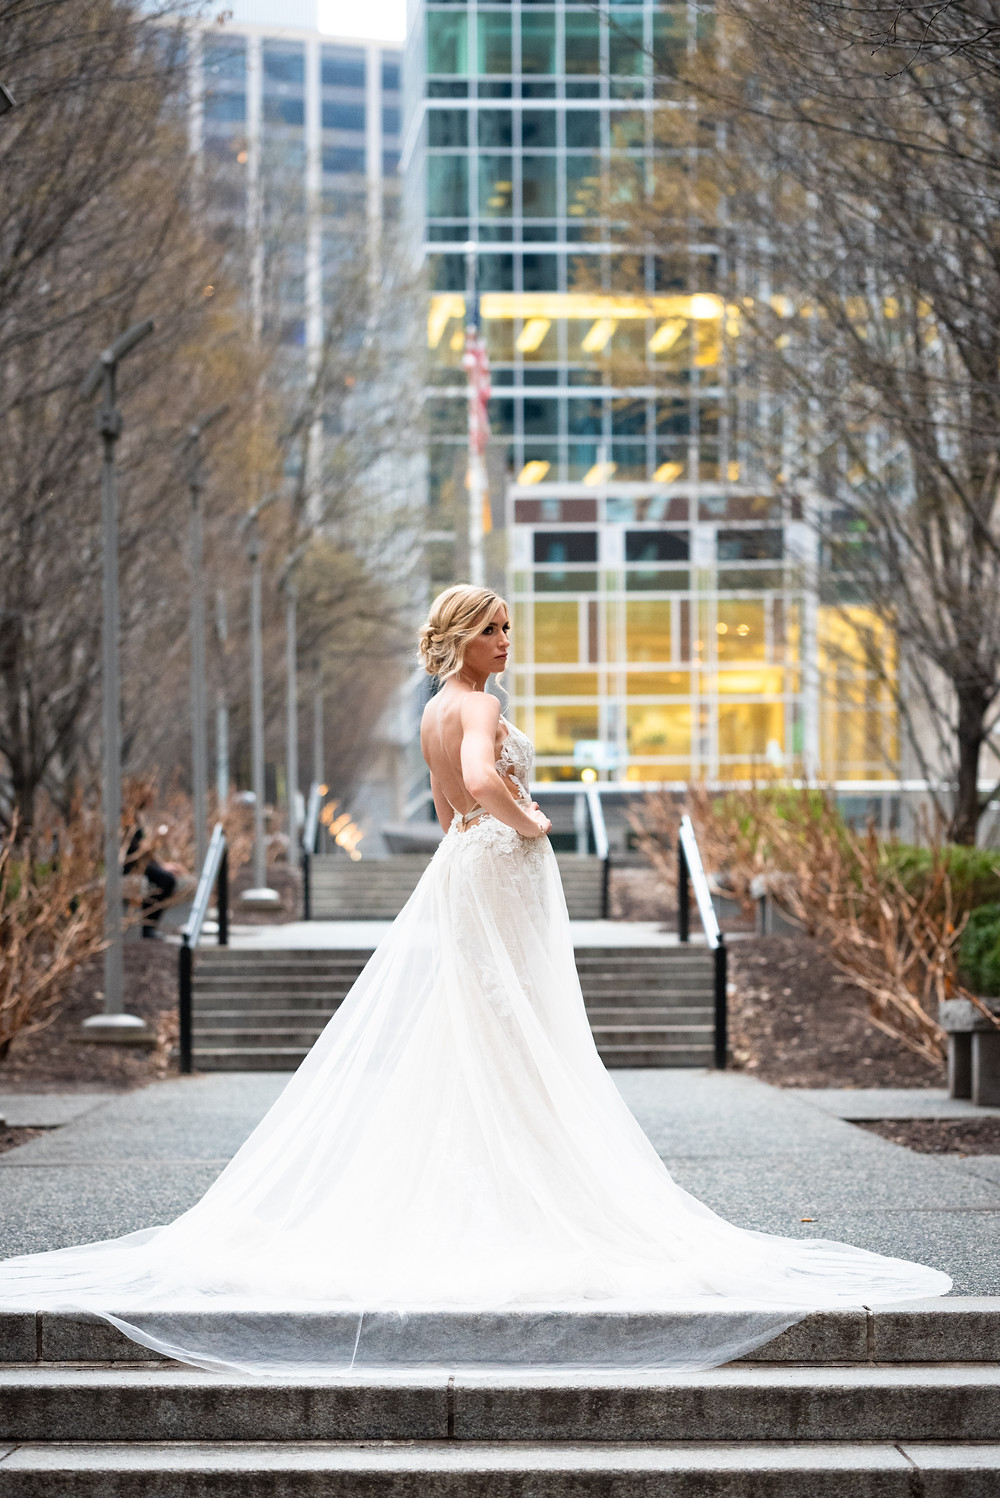 Bridal portraits in downtown Pittsburgh; Bride in Berta dress  with overskirt